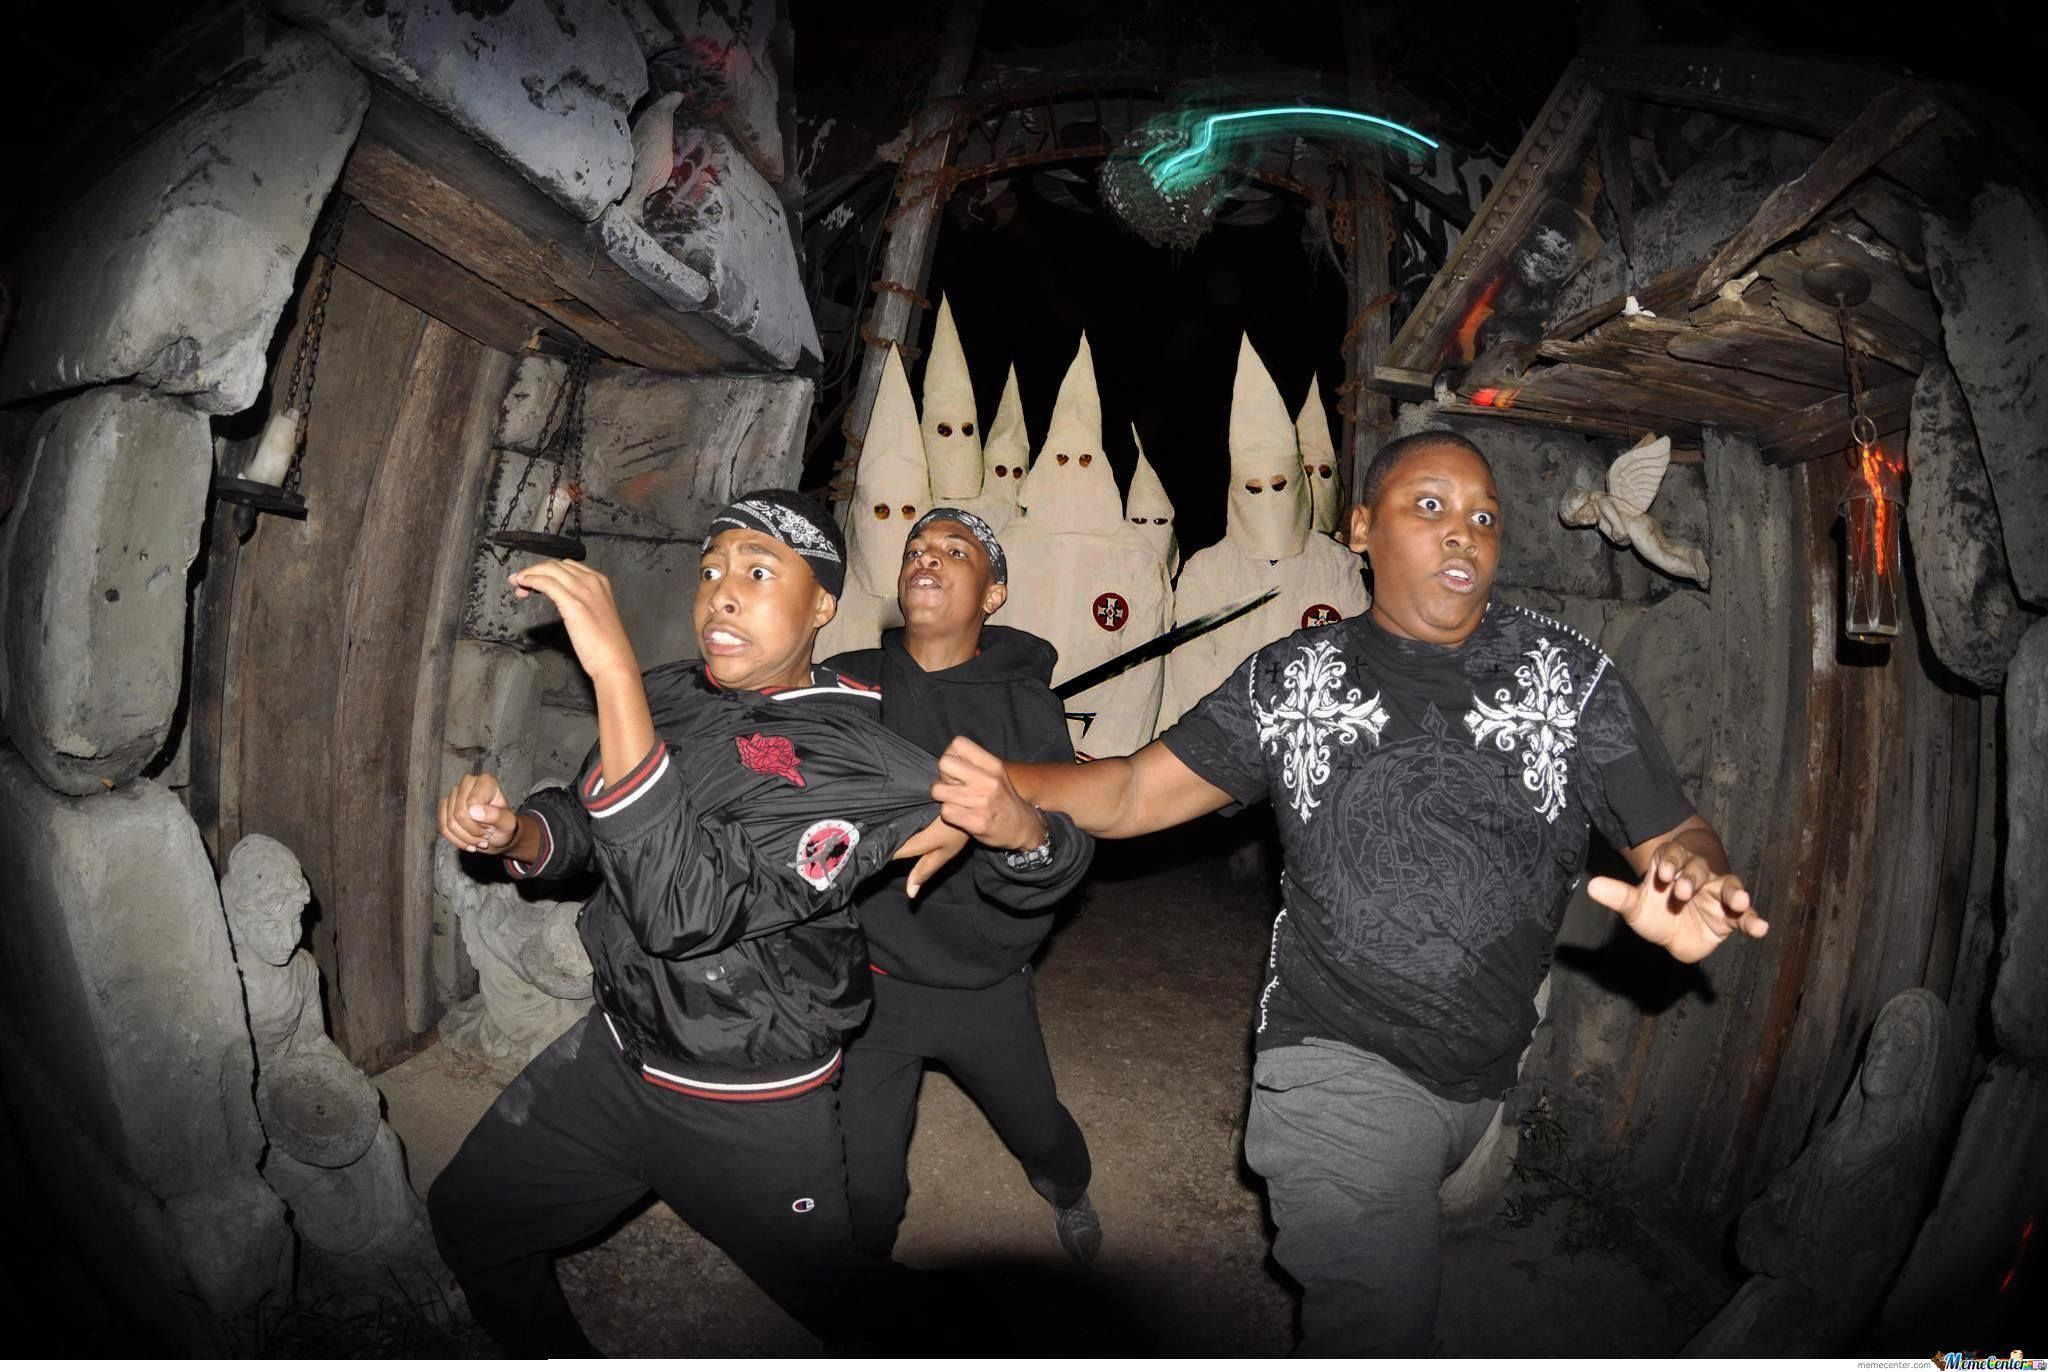 Scariest Haunted House Ever Haunted House Halloween Funny Scary Haunted House